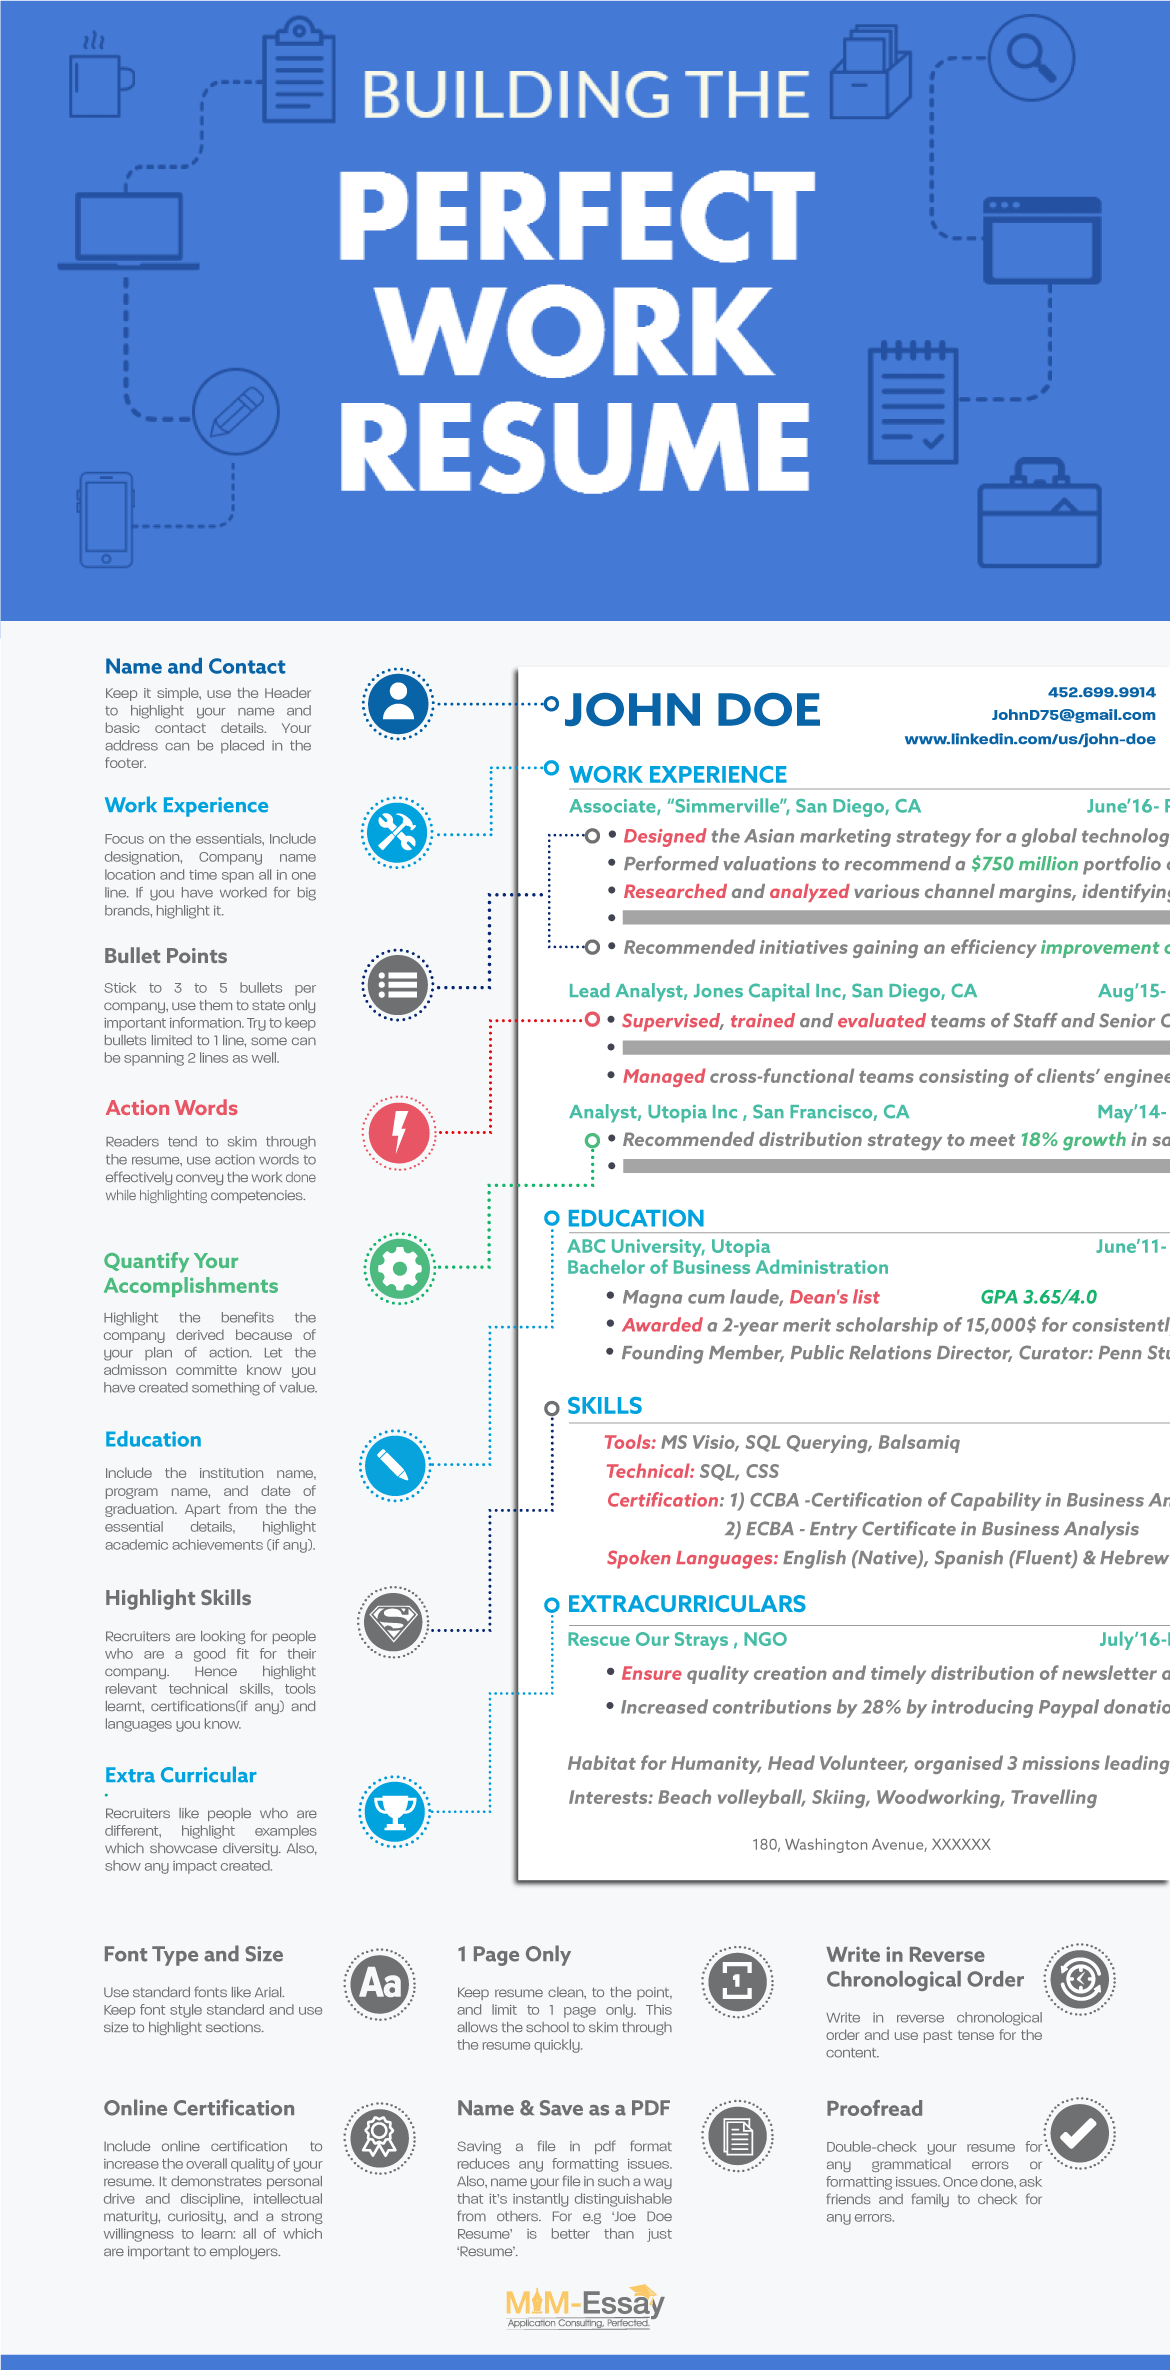 Building a Resume What Your Professor Didnt Teach You INFOGRAPHIC